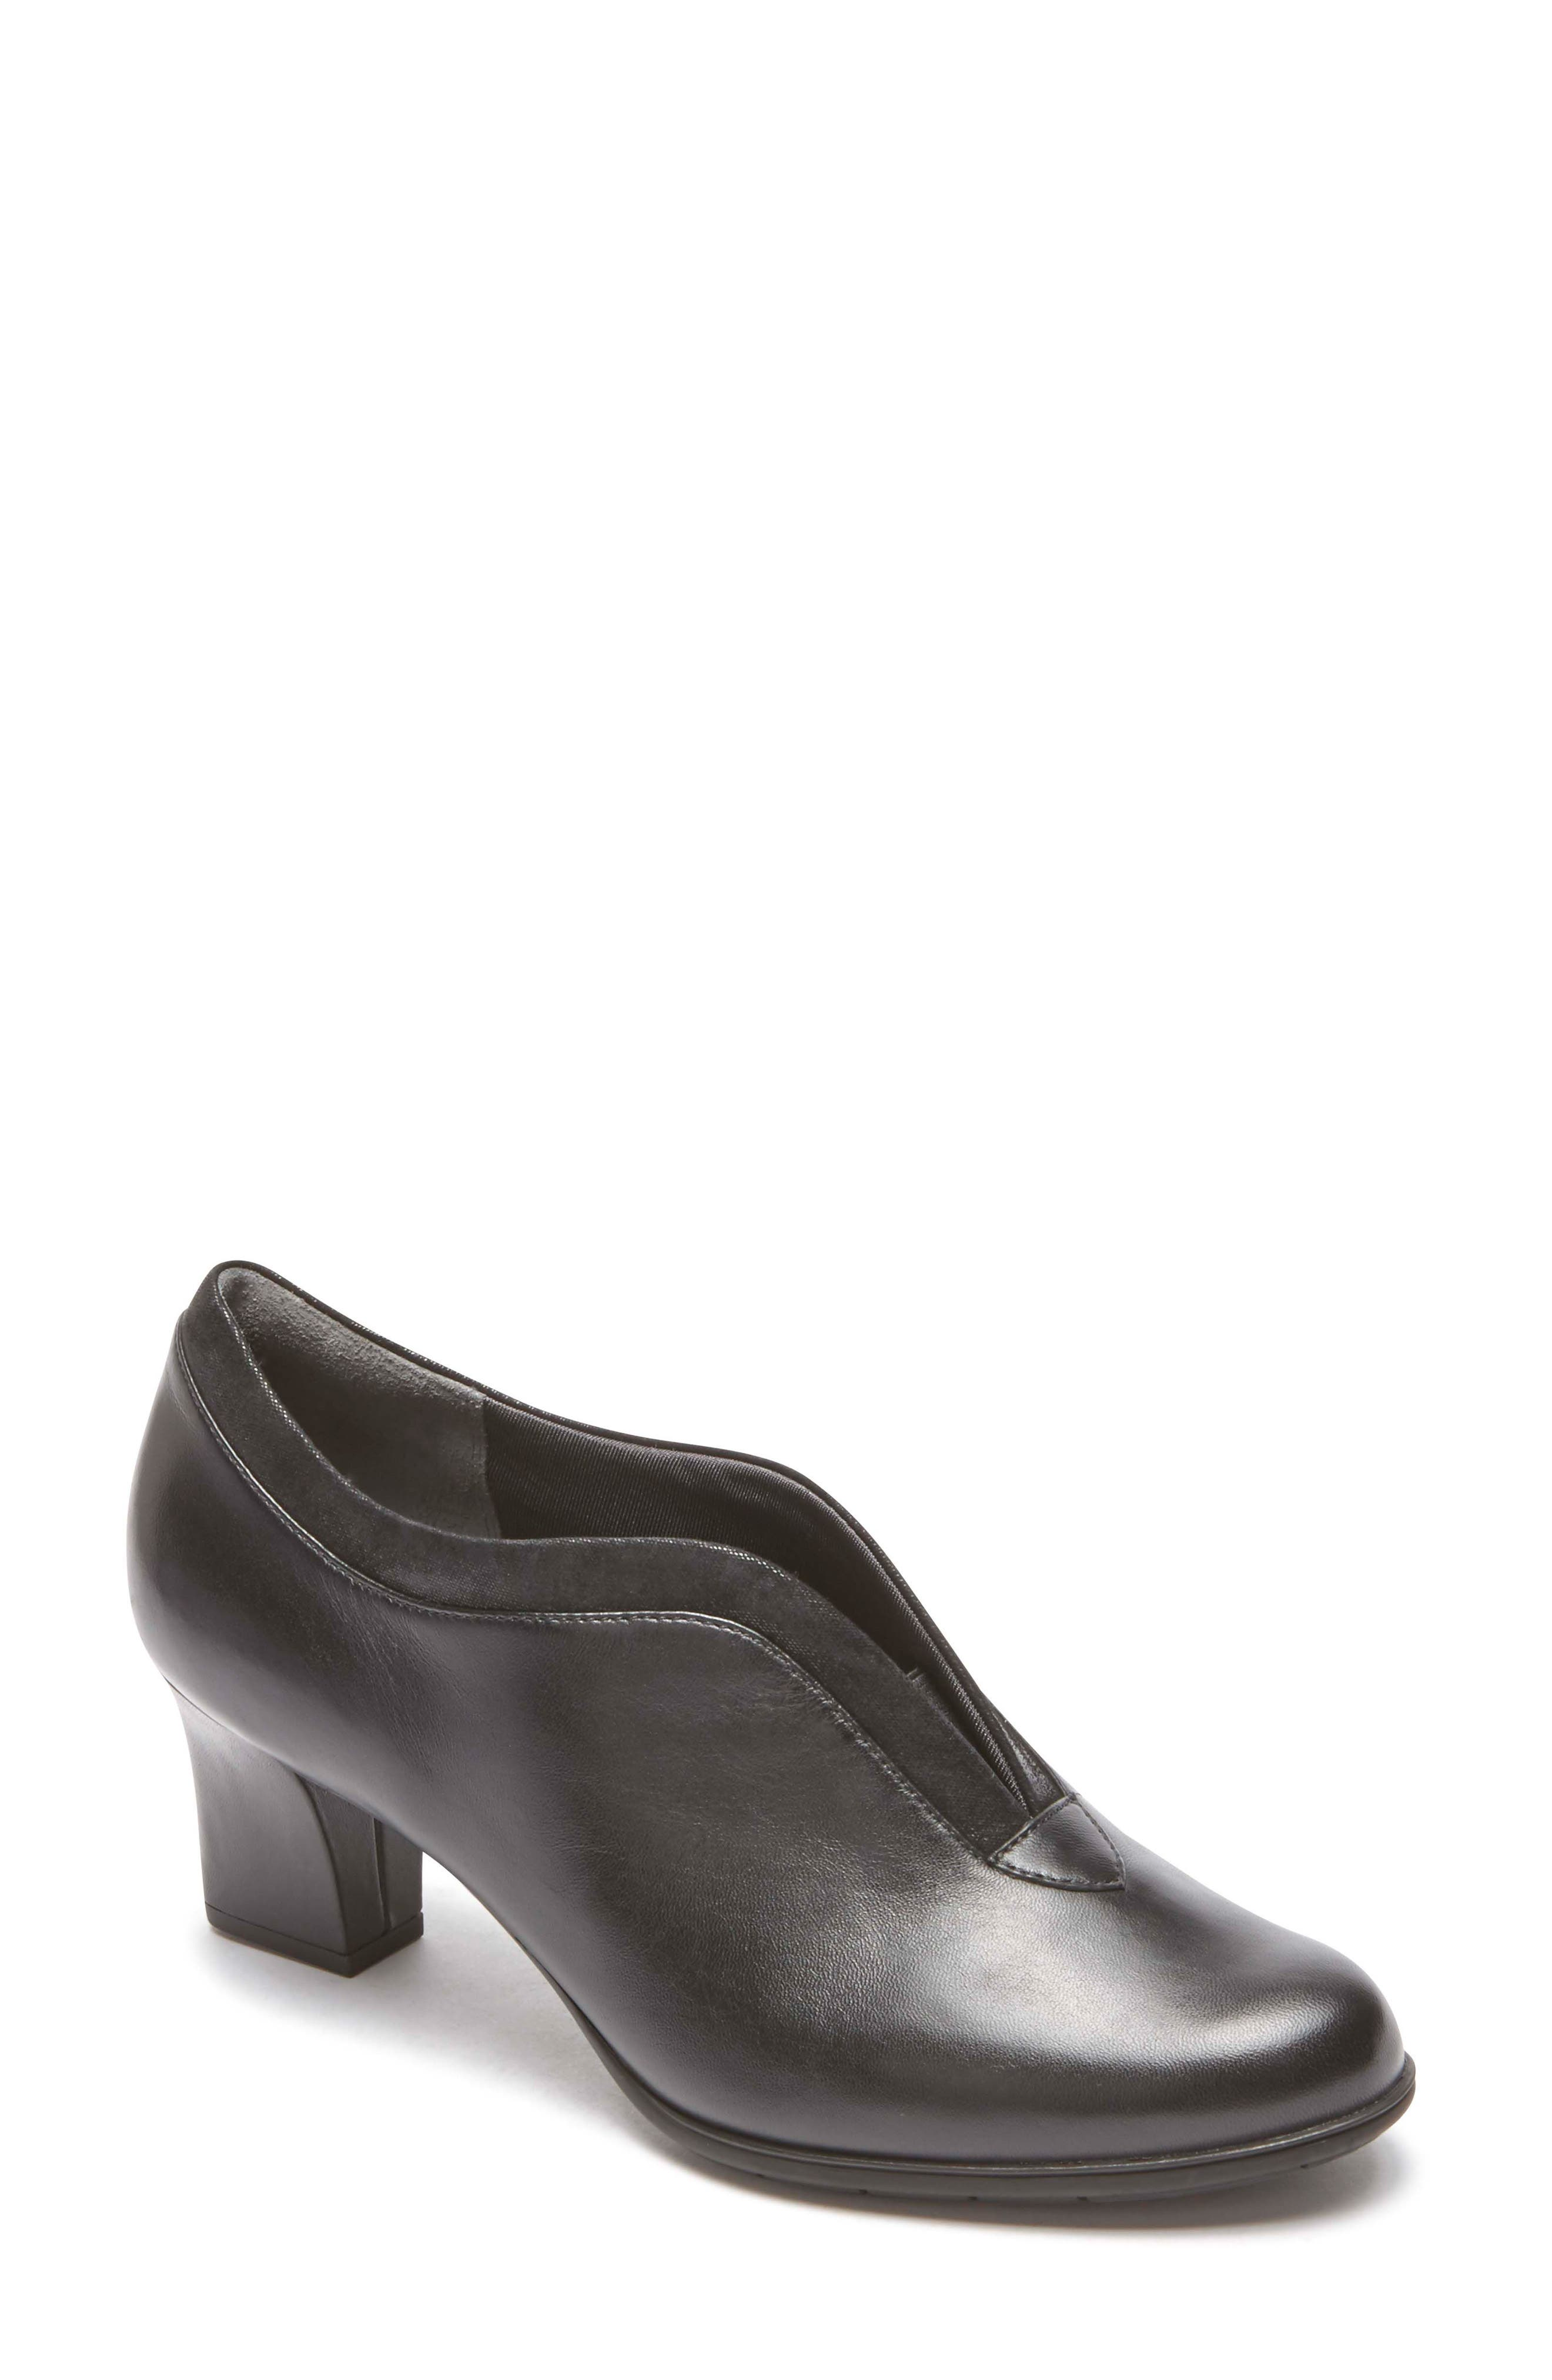 Esty Luxe Pump,                         Main,                         color, BLACK LEATHER